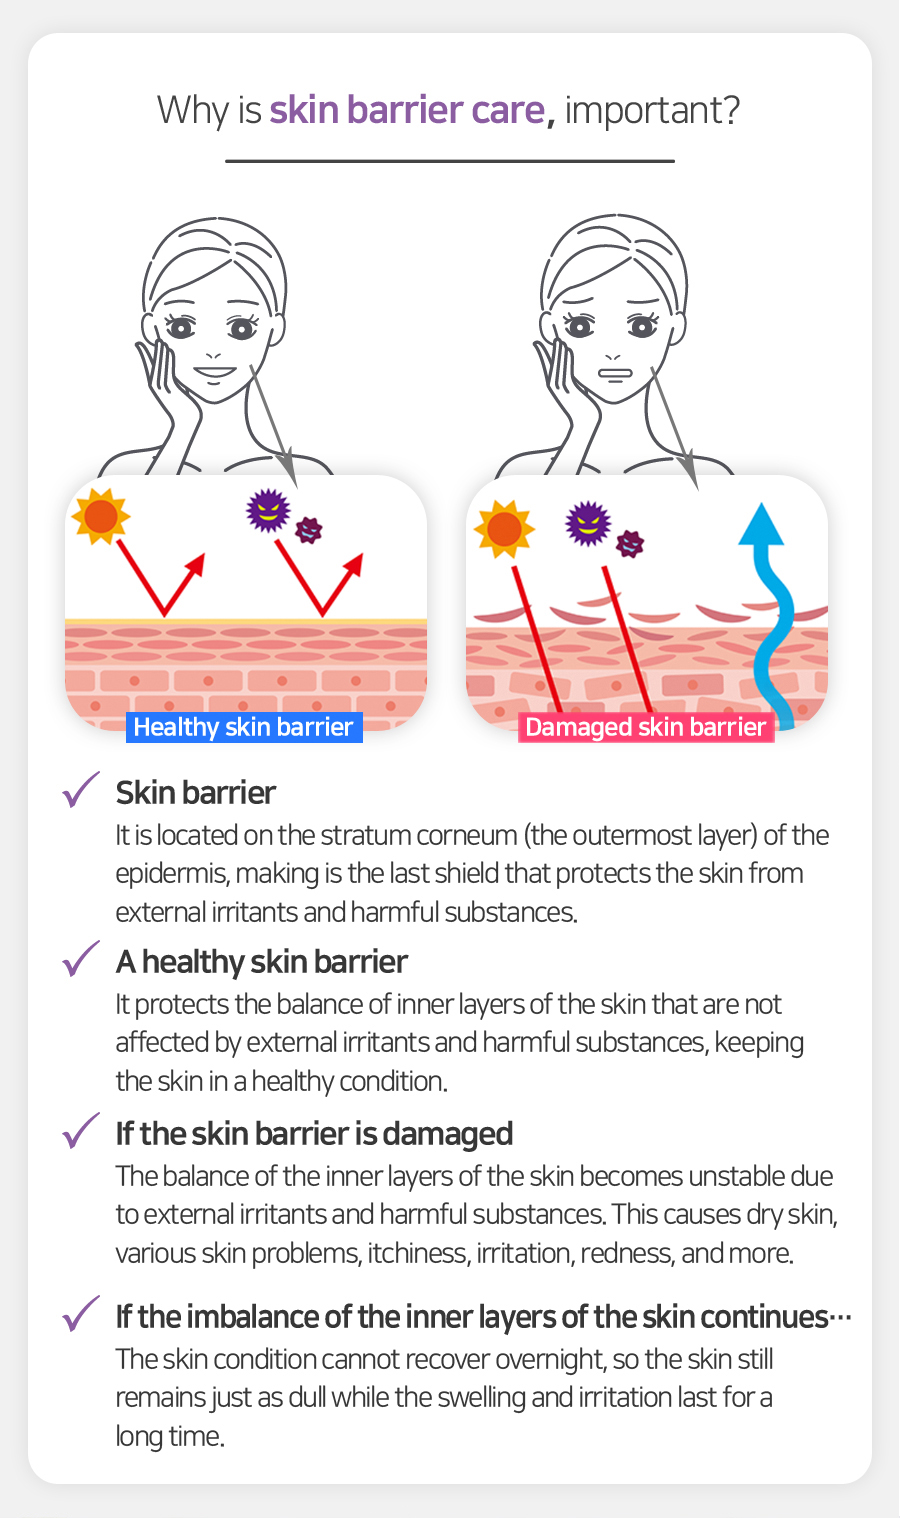 Why is skin barrier care important? :: Skin barrier : It is located on the stratum corneum (the outermost layer) of the epidermis, making is the last shield that protects the skin from external irritants and harmful substances. // If the skin barrier is damaged : The balance of the inner layers of the skin becomes unstable due to external irritants and harmful substances. This causes dry skin, various skin problems, itchiness, irritation, redness, and more. // If the imbalance of the inner layers of the skin continues… : The skin condition cannot recover overnight, so the skin still remains just as dull while the swelling and irritation last for a long time.